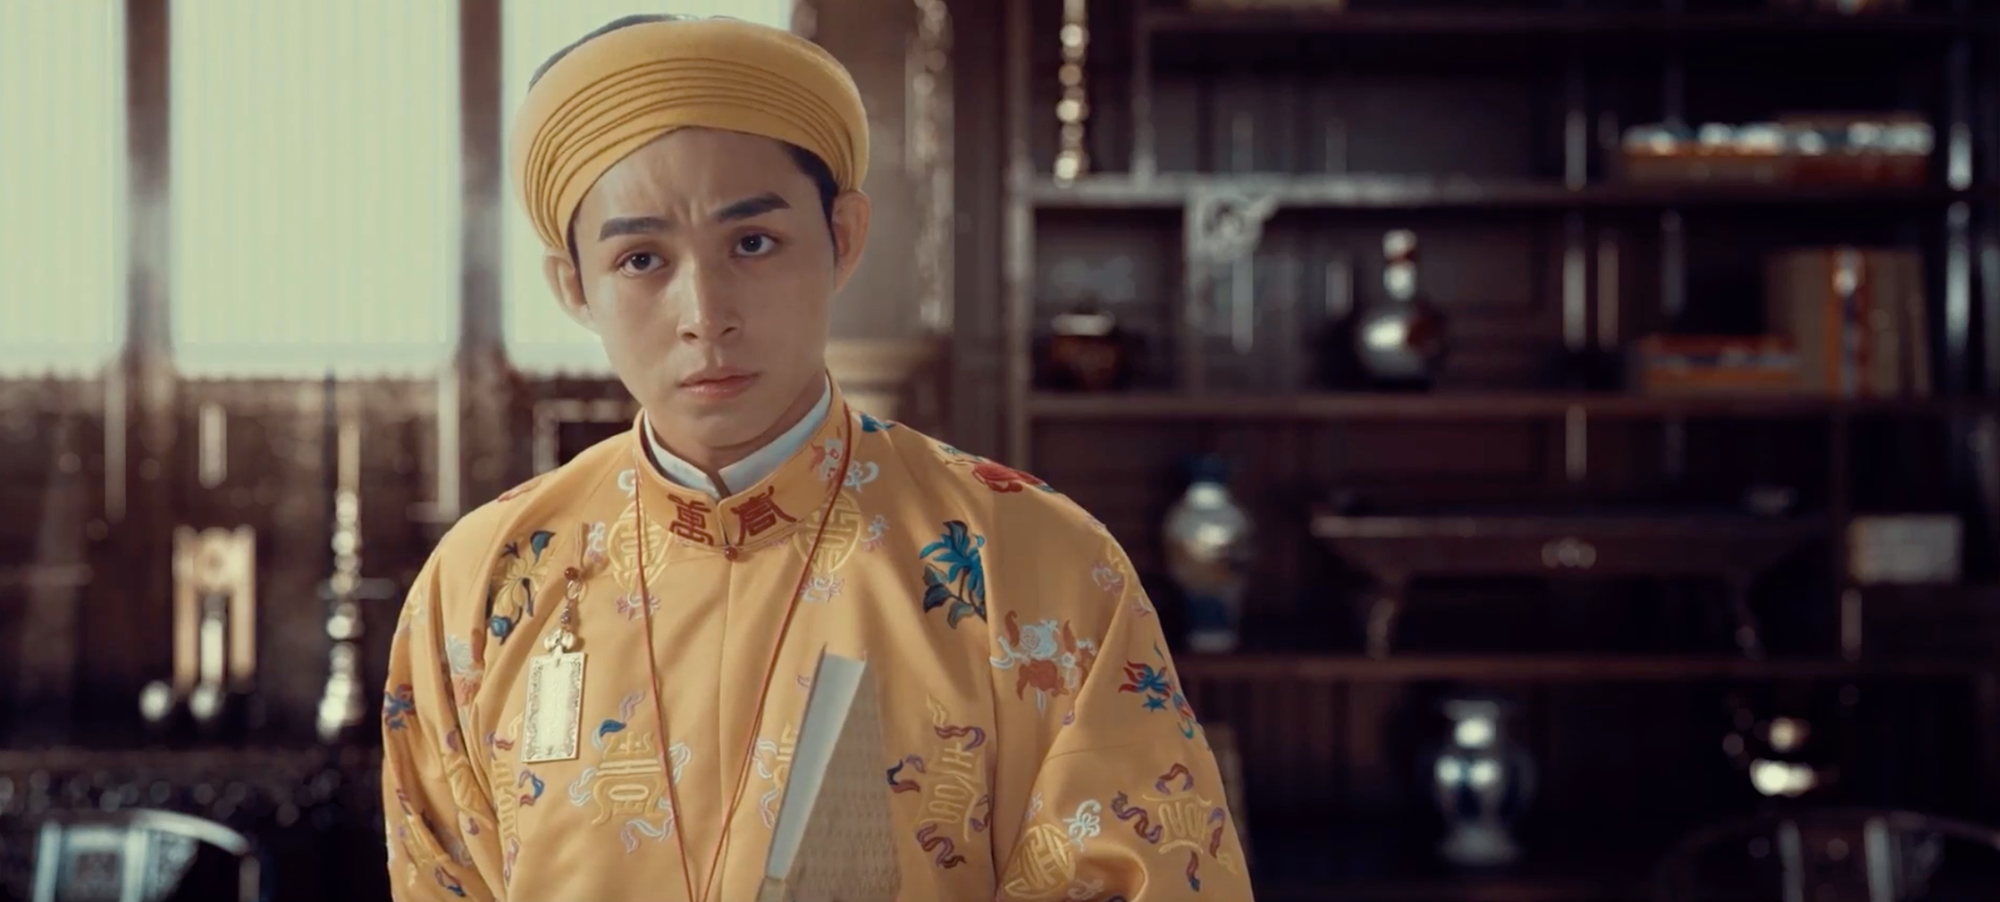 Actor Jun Pham portrays Emperor Tu Duc in Vietnamese palace historical drama 'Phuong Khau'.